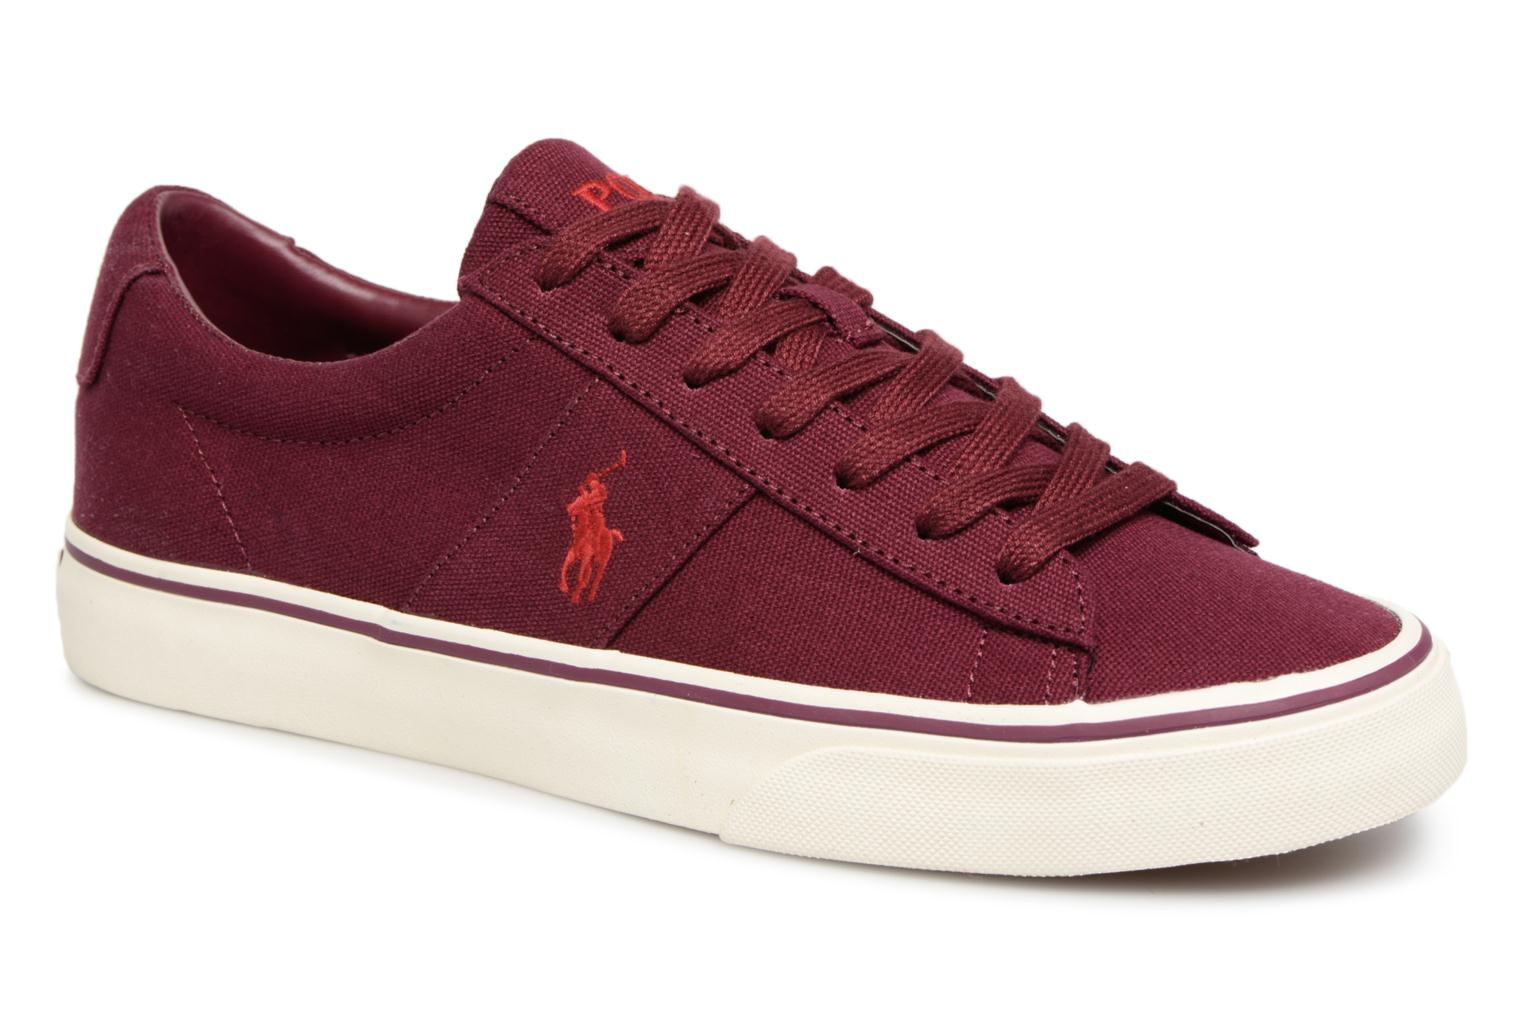 Sneakers Polo Ralph Lauren Bordeaux